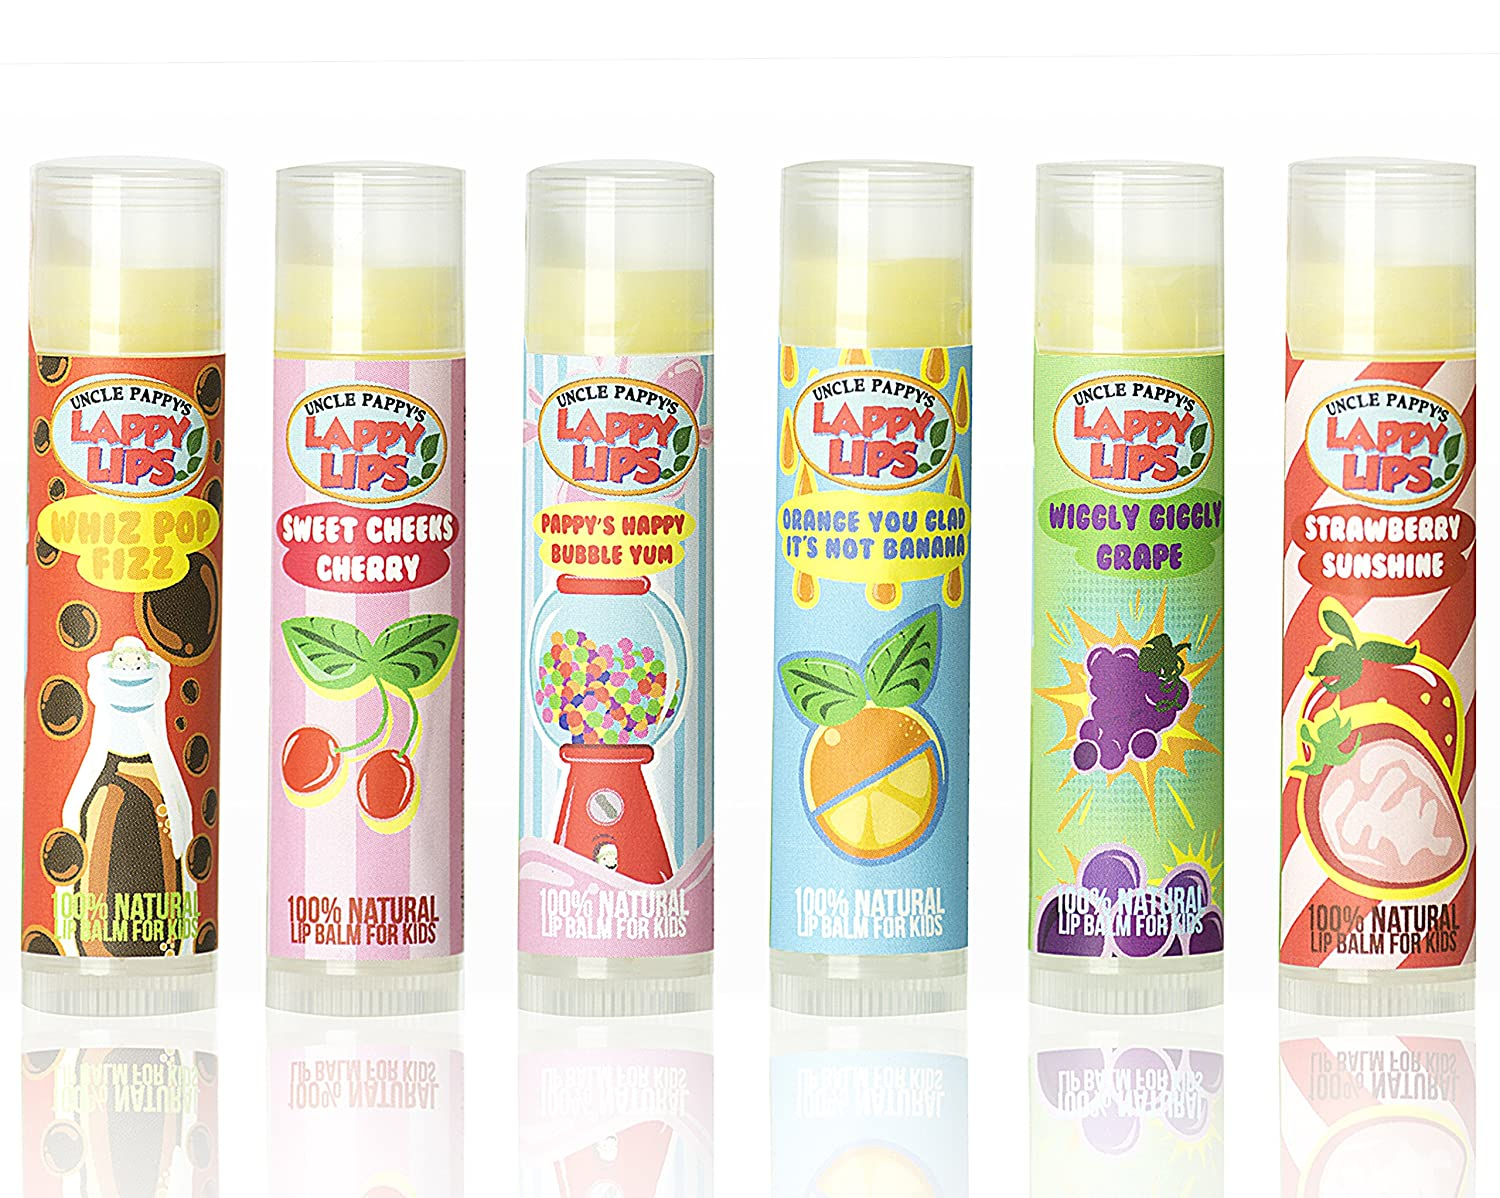 Lappy Lips 100% Natural, Organic Lip Balm Chap stick with free Lappy Lips sticker for Kids, Toddlers and Even Boys (All flavors)